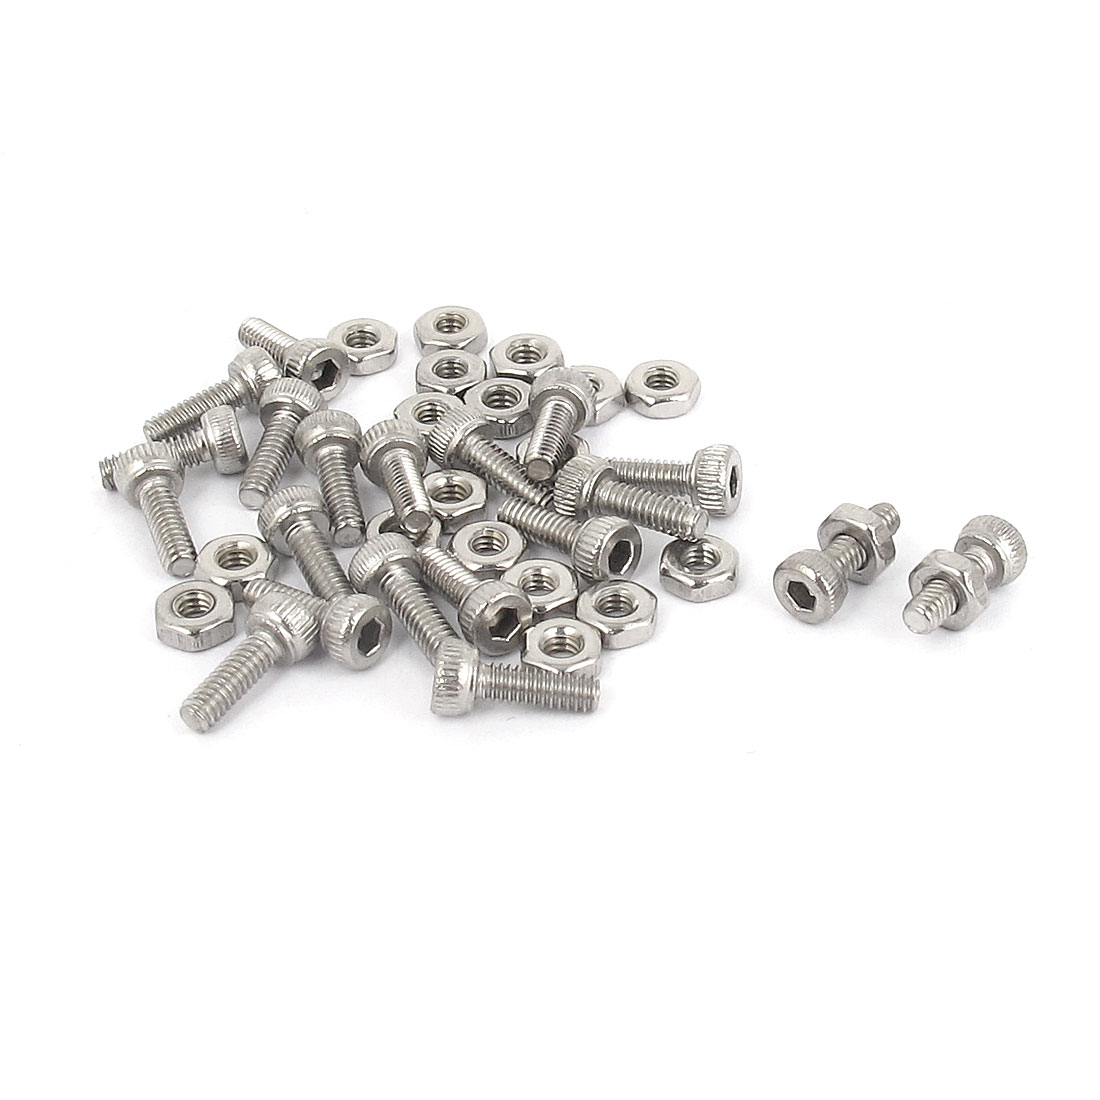 M2x6mm Stainless Steel Hex Socket Head Knurled Cap Screws Bolts Nut Set 20Pcs